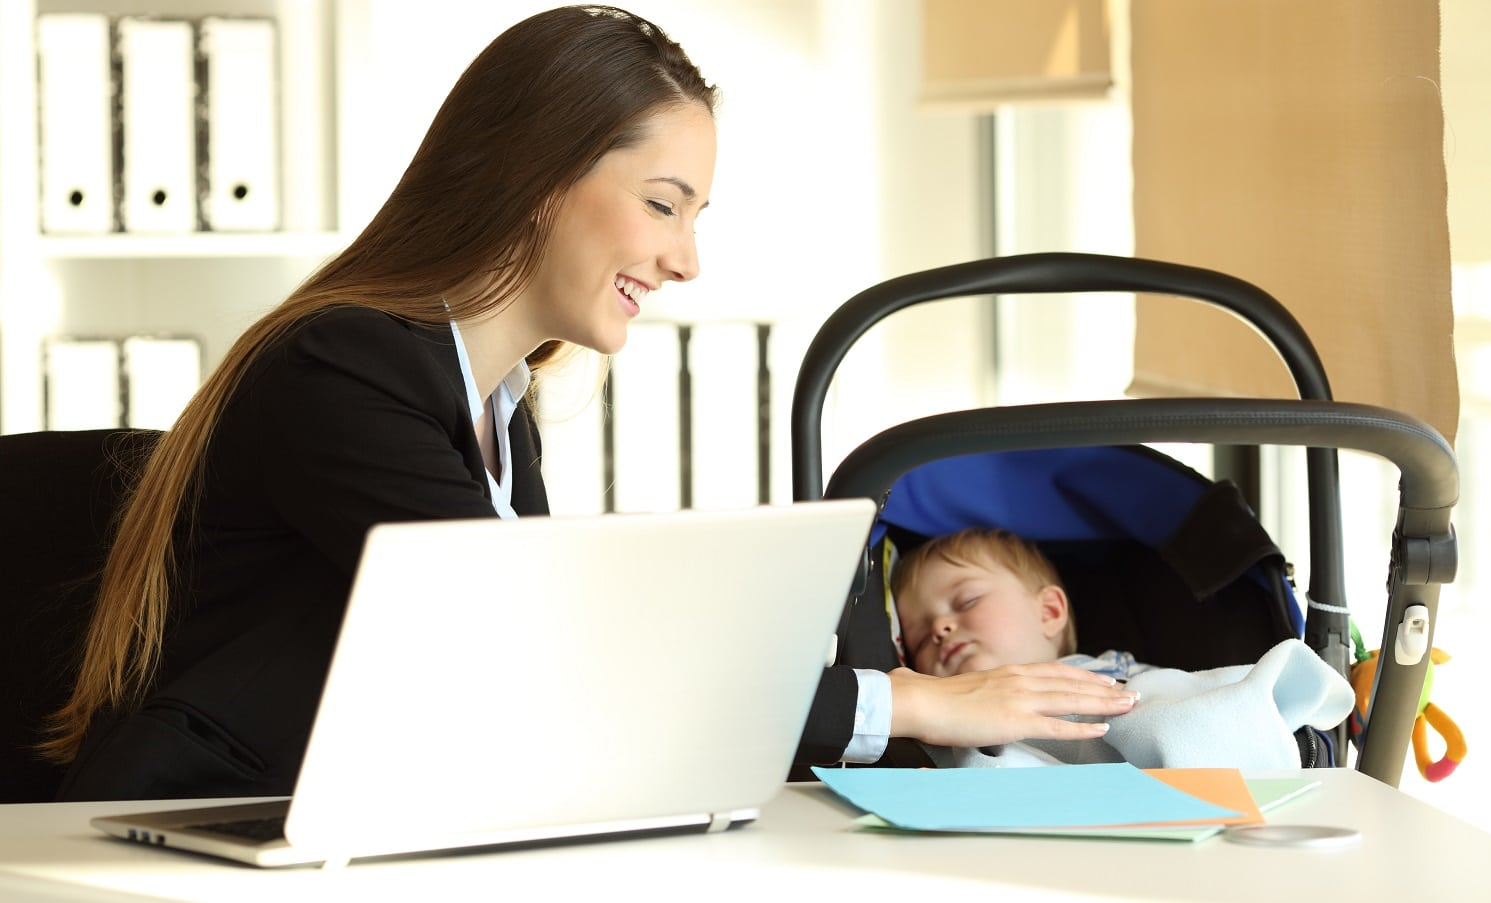 12 tips for working mother to manage baby care - 12 Tips for Working Mother to Manage Baby Care